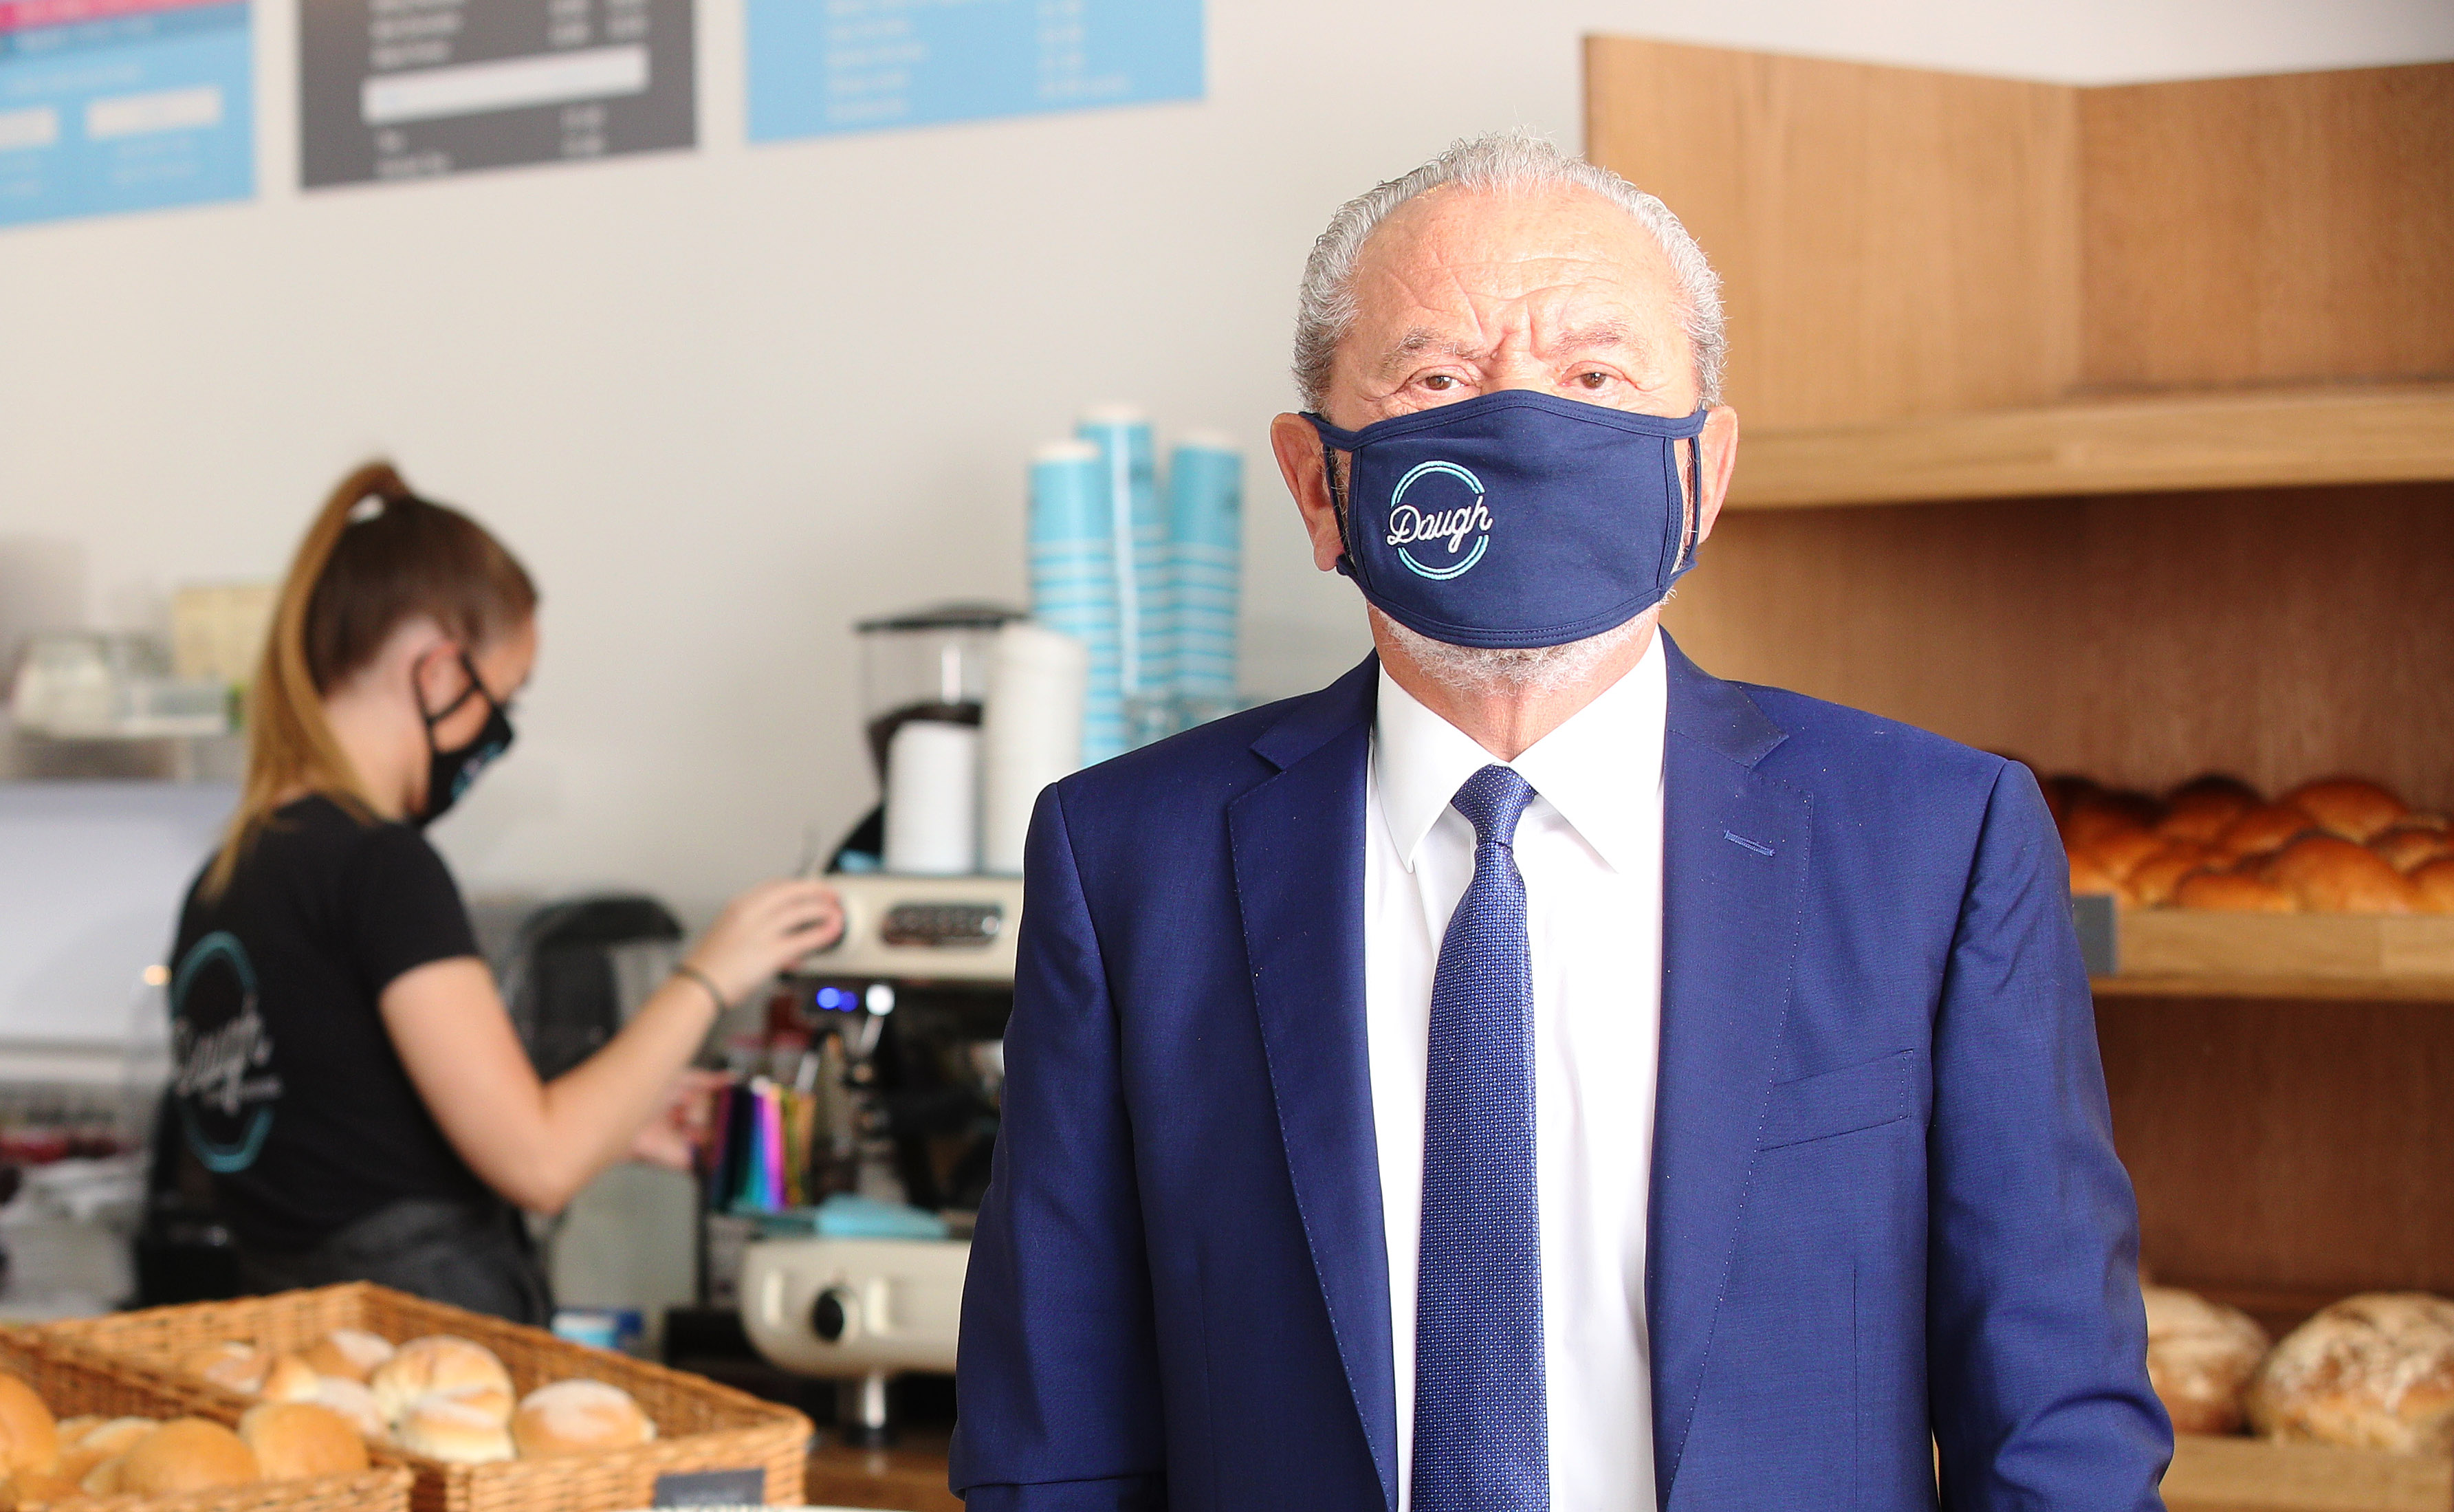 Lord Sugar joins The Apprentice winner for Dough Bakehouse branch opening, London, 8th September 2020